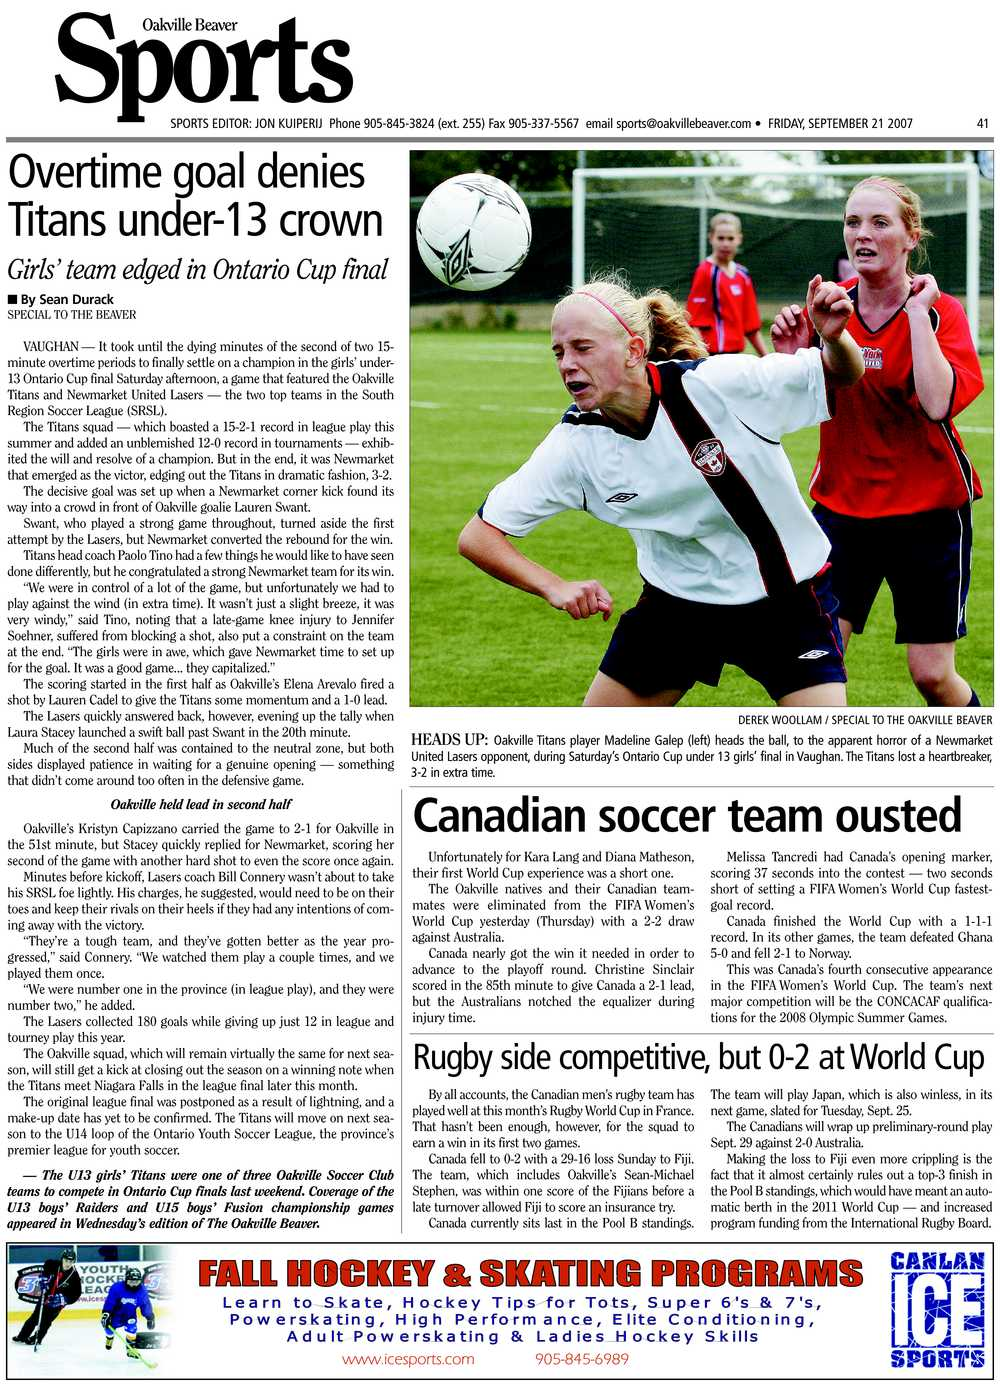 Overtime goal denies Titans under-13 crown: girls' team edged in Ontario cup final